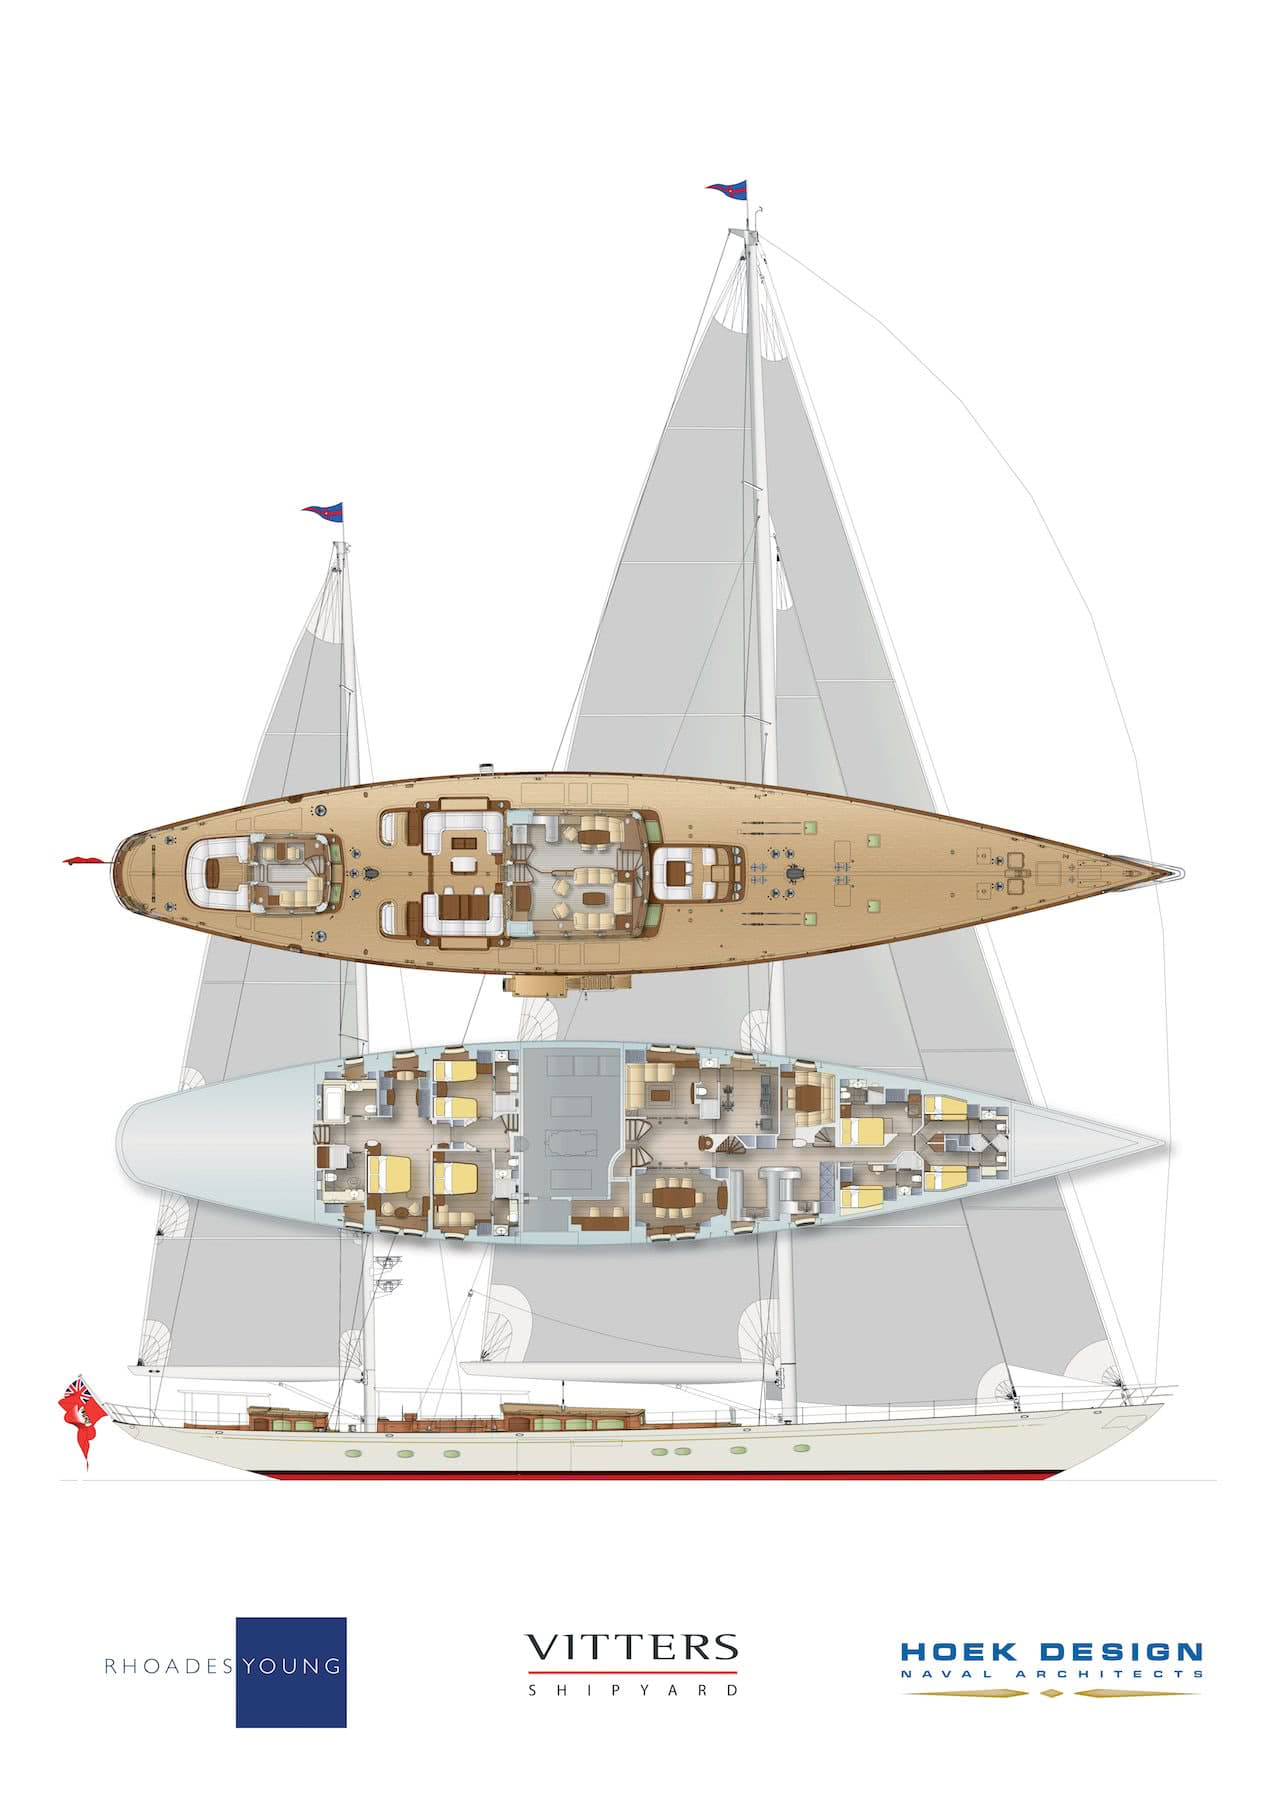 50m ketch-rigged Classic Sailing Yacht